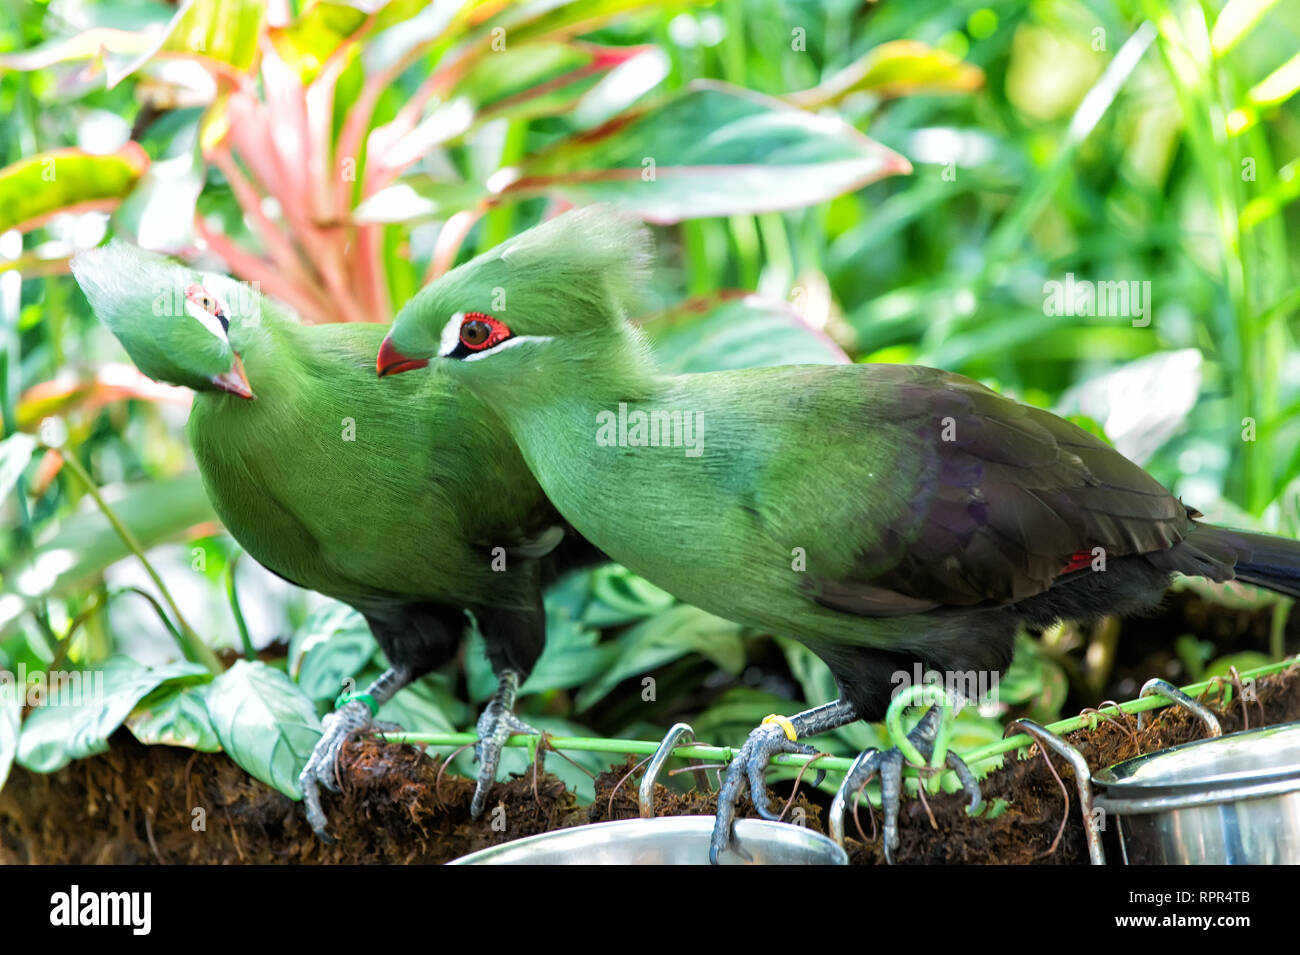 Birds couple or pair perched on twig on sunny day on natural background. Cute tufted spices with green plumage. Mating season. Wildlife and nature. Ornithology Stock Photo